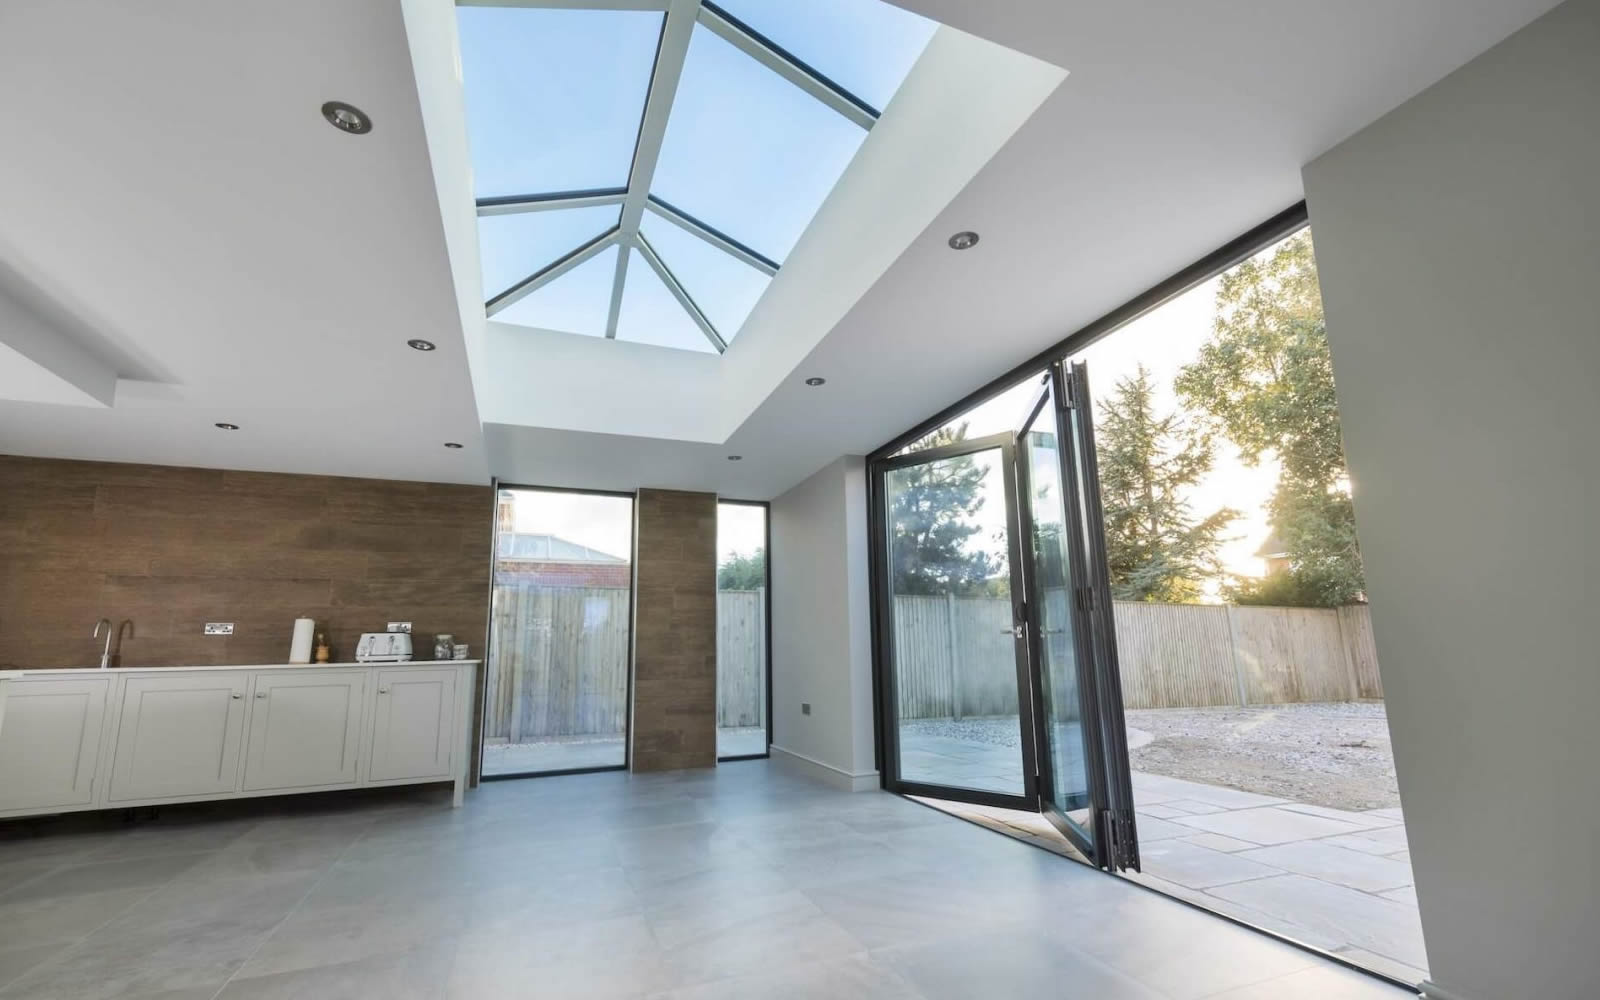 Stunning Lantern Roof by Belvedere windows